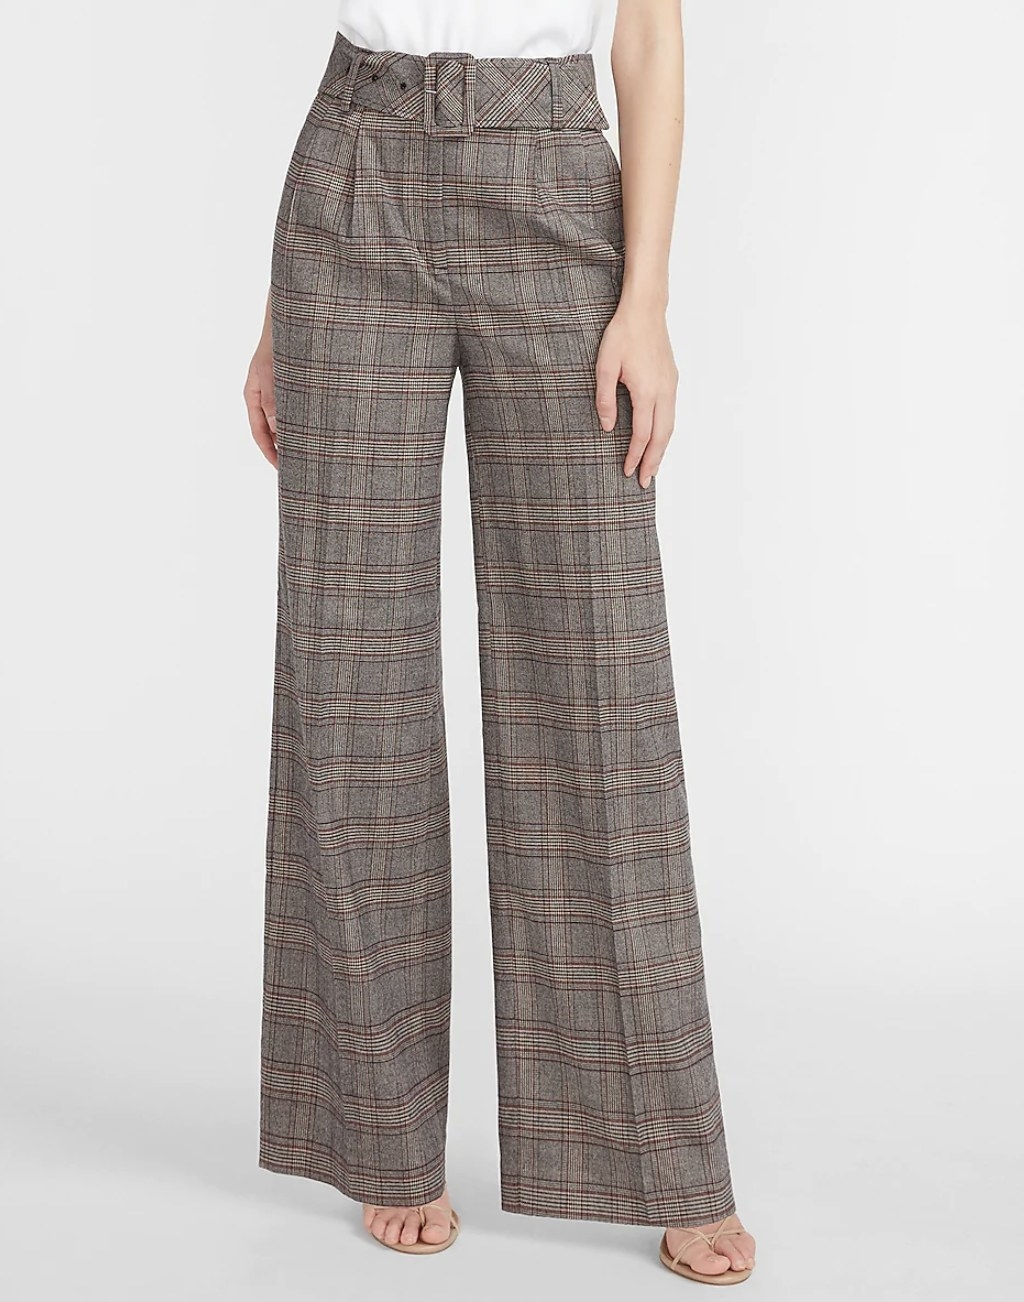 high-waisted plaid pants with a square belt